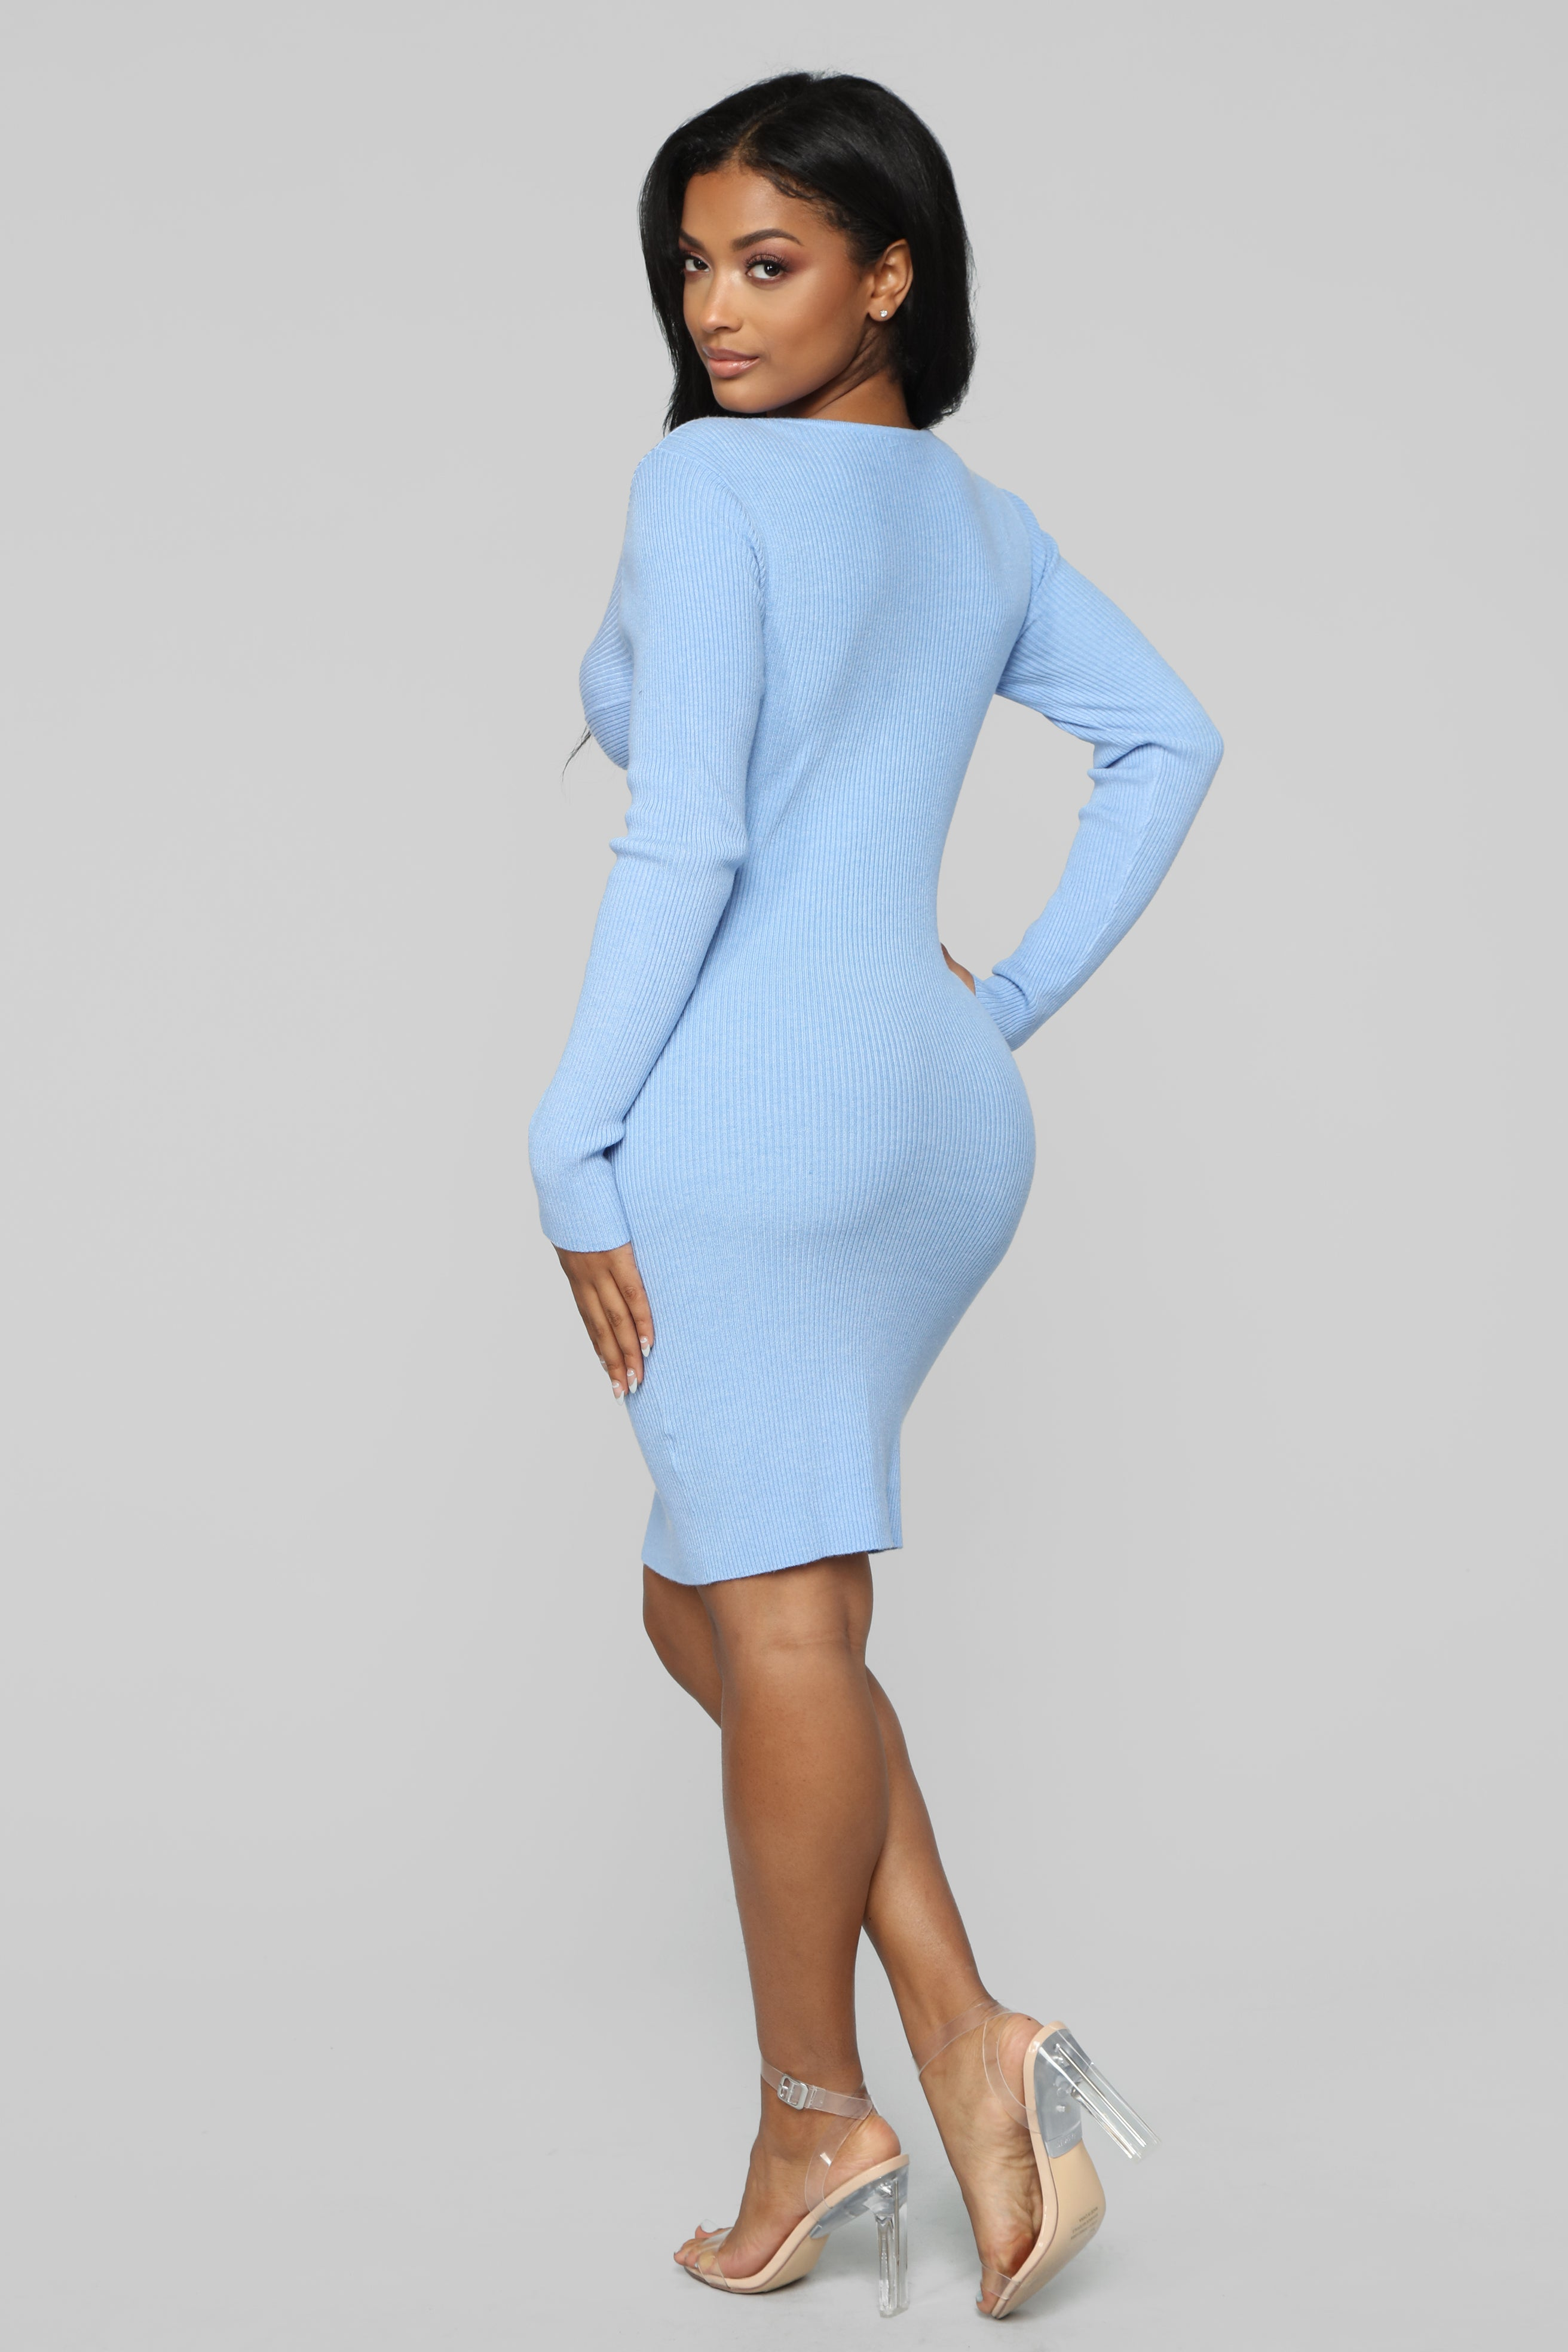 Won T Let You Fall Sweater Dress Light Blue